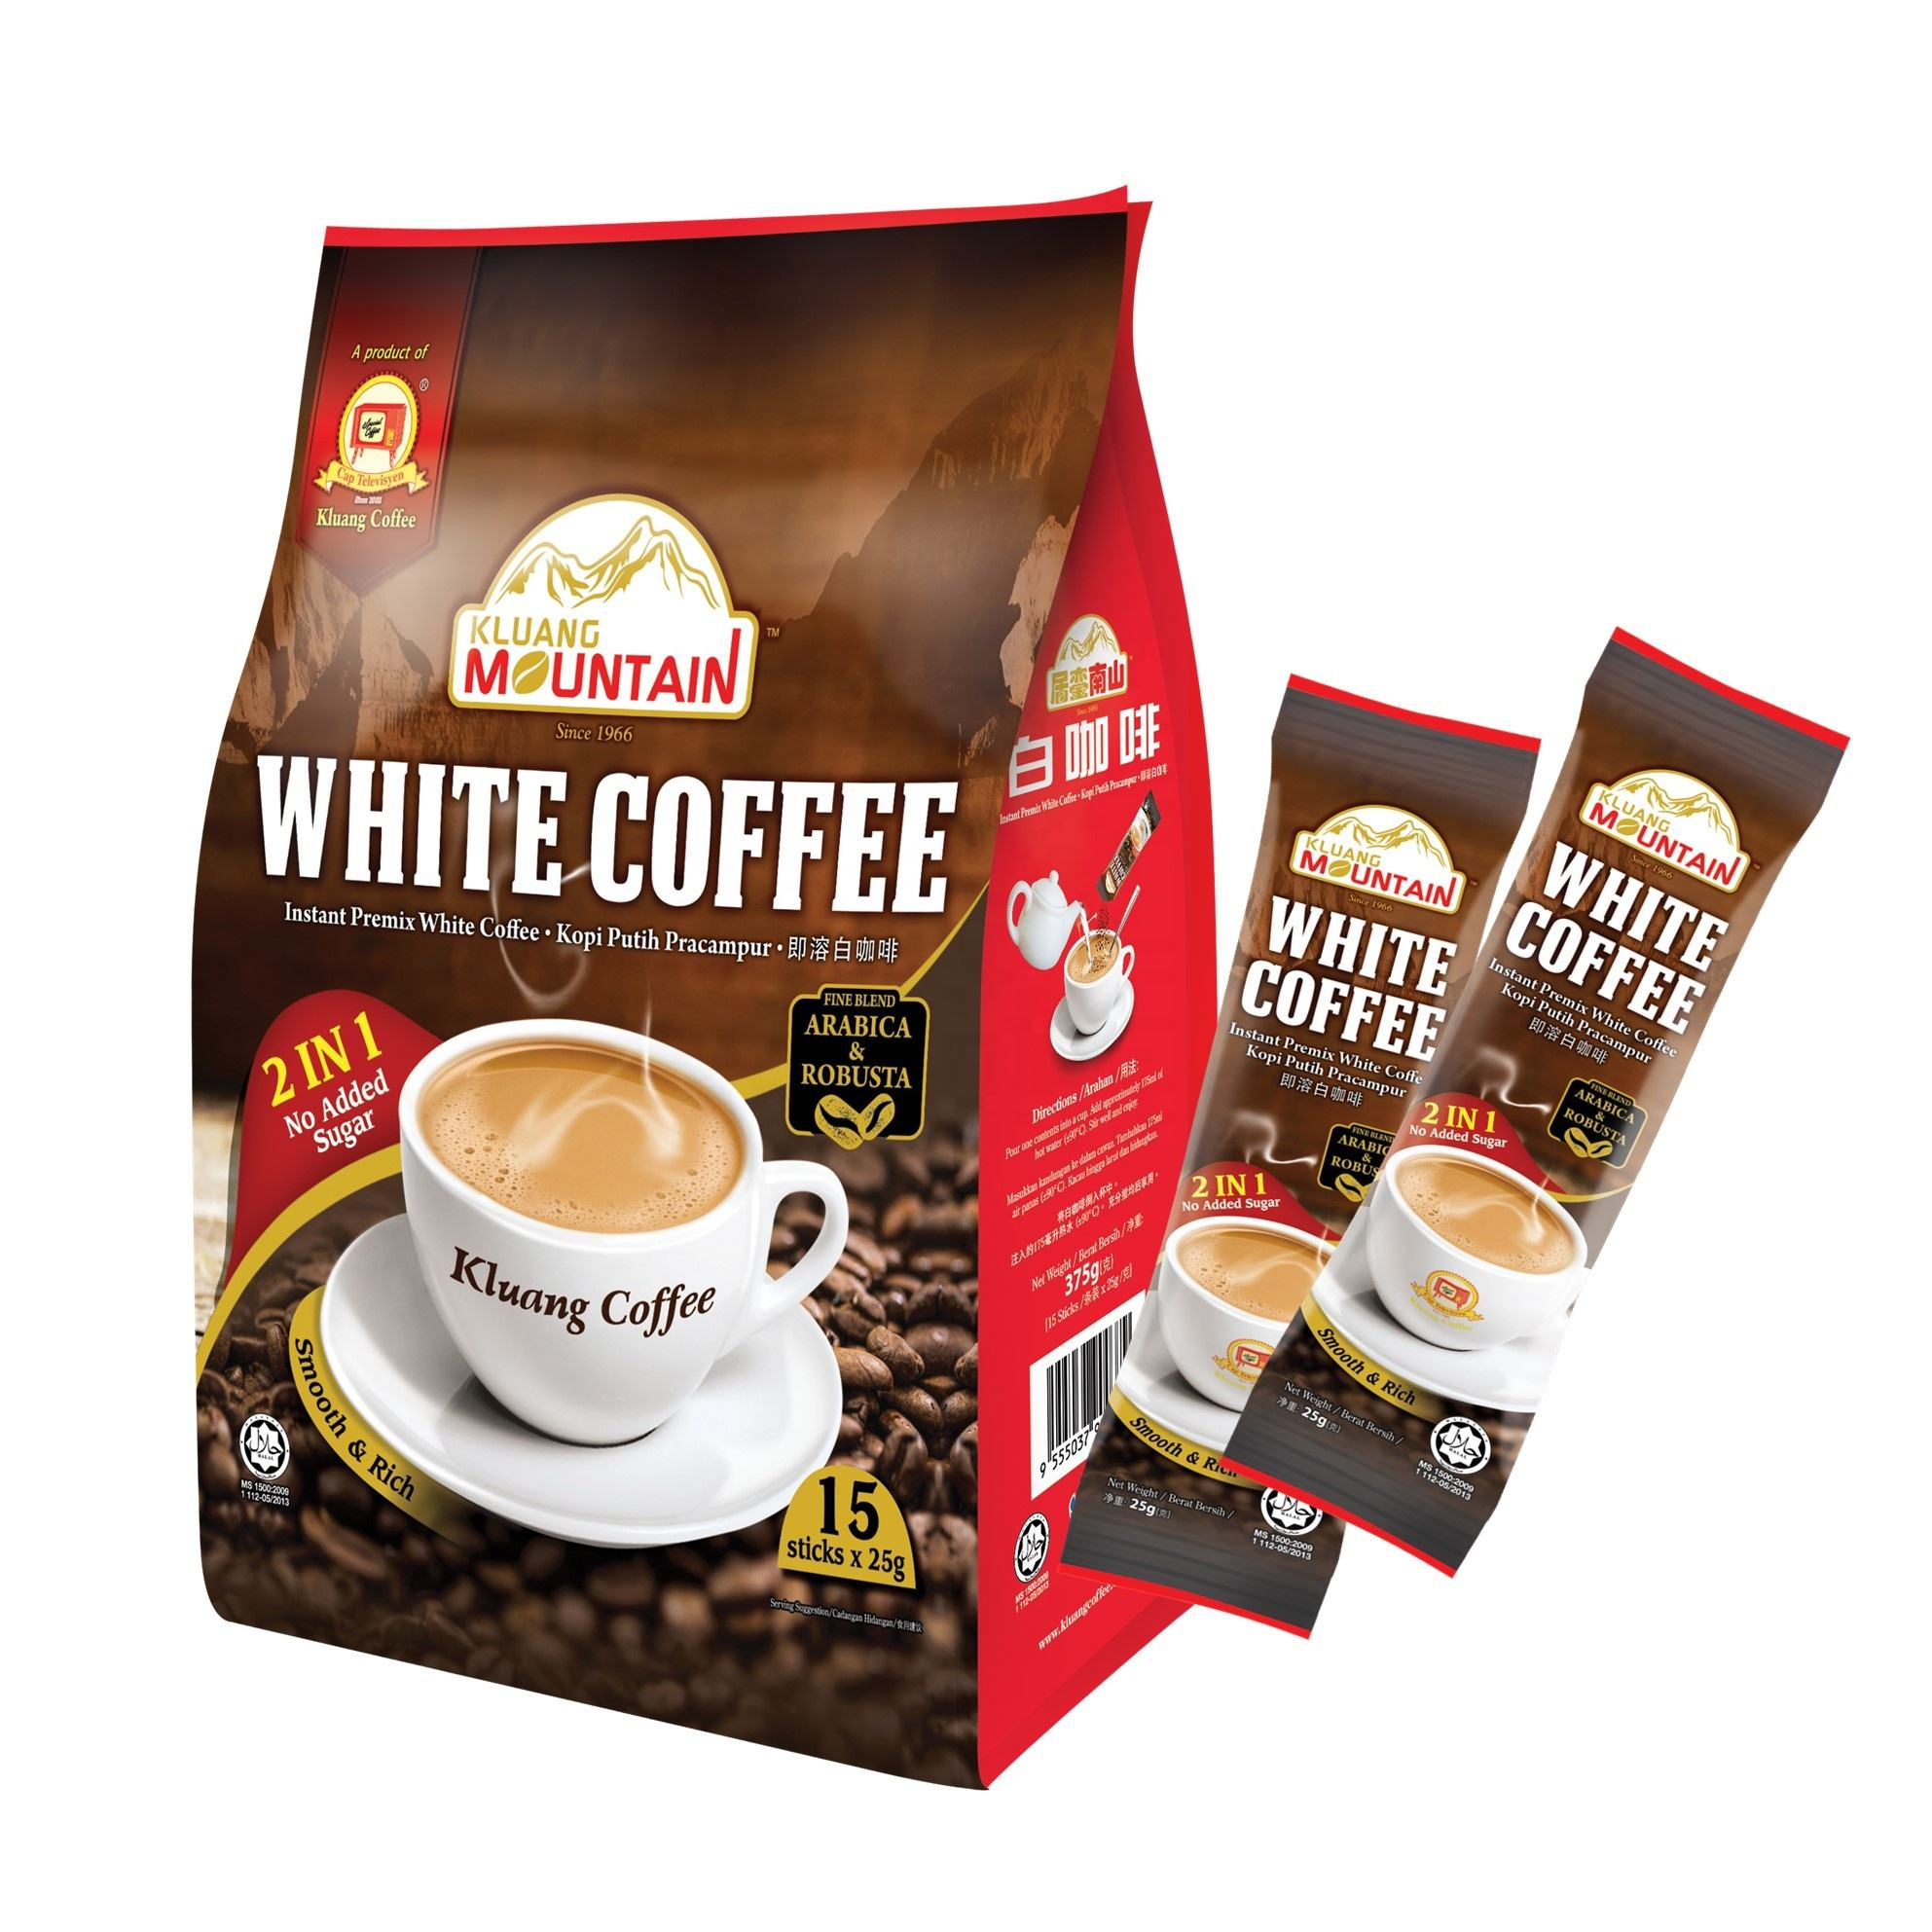 Kluang Mountain Instant White Coffee 2 in 1 (No Added Sugar) Malaysia HALAL (15 Sticks x 25g) Televisyen Brand Net Weight 375g